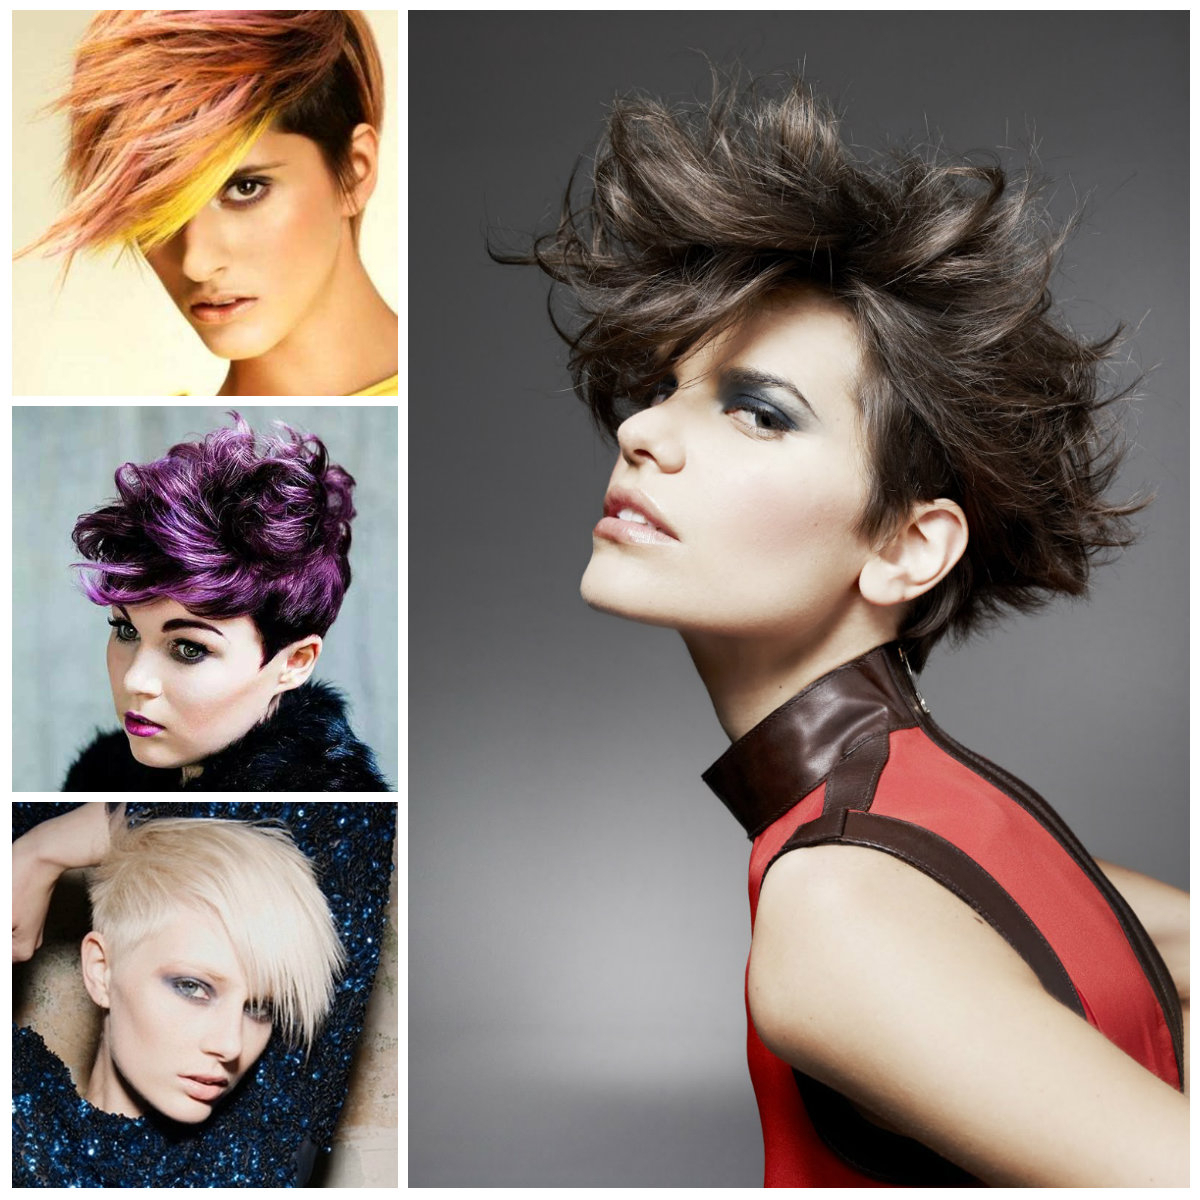 Hairstyles For Regarding Well Known Asymmetrical Medium Haircuts For Women (View 11 of 20)